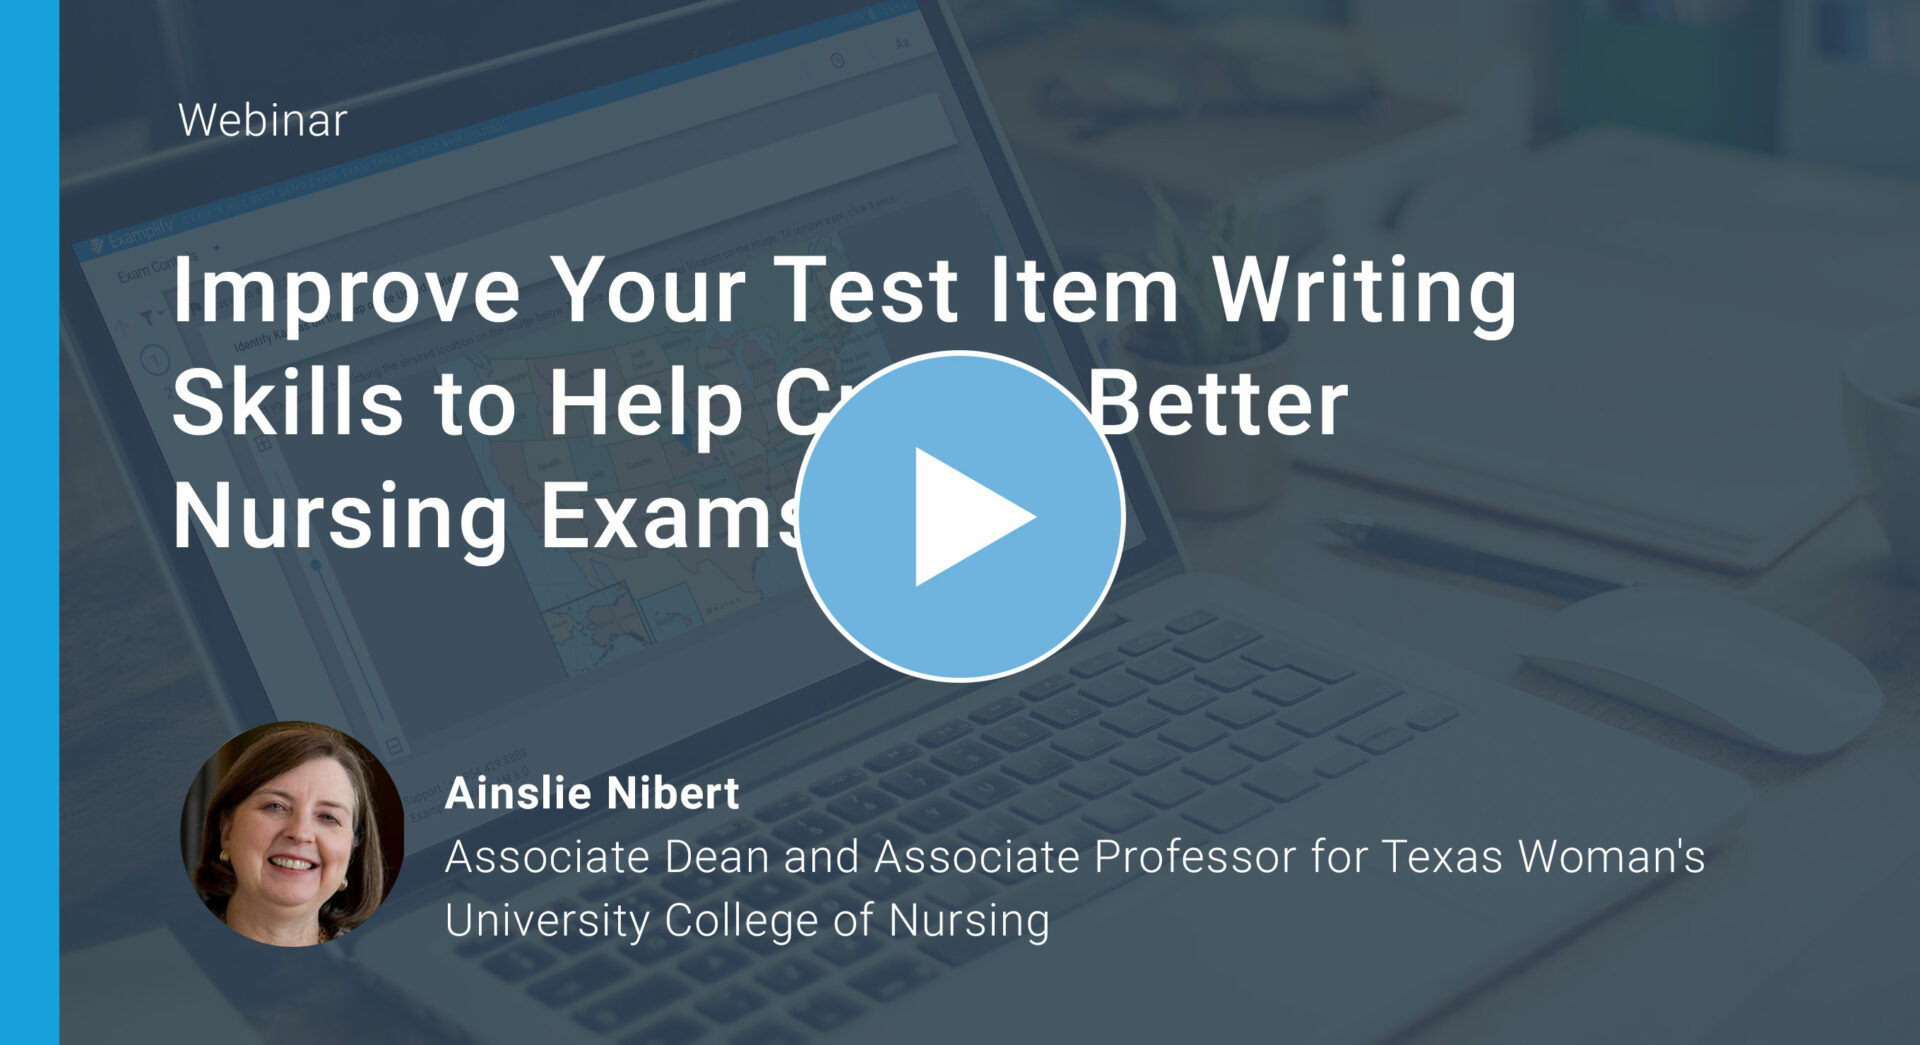 Improve Your Test Item Writing Skills to Help Create Better Nursing Exams